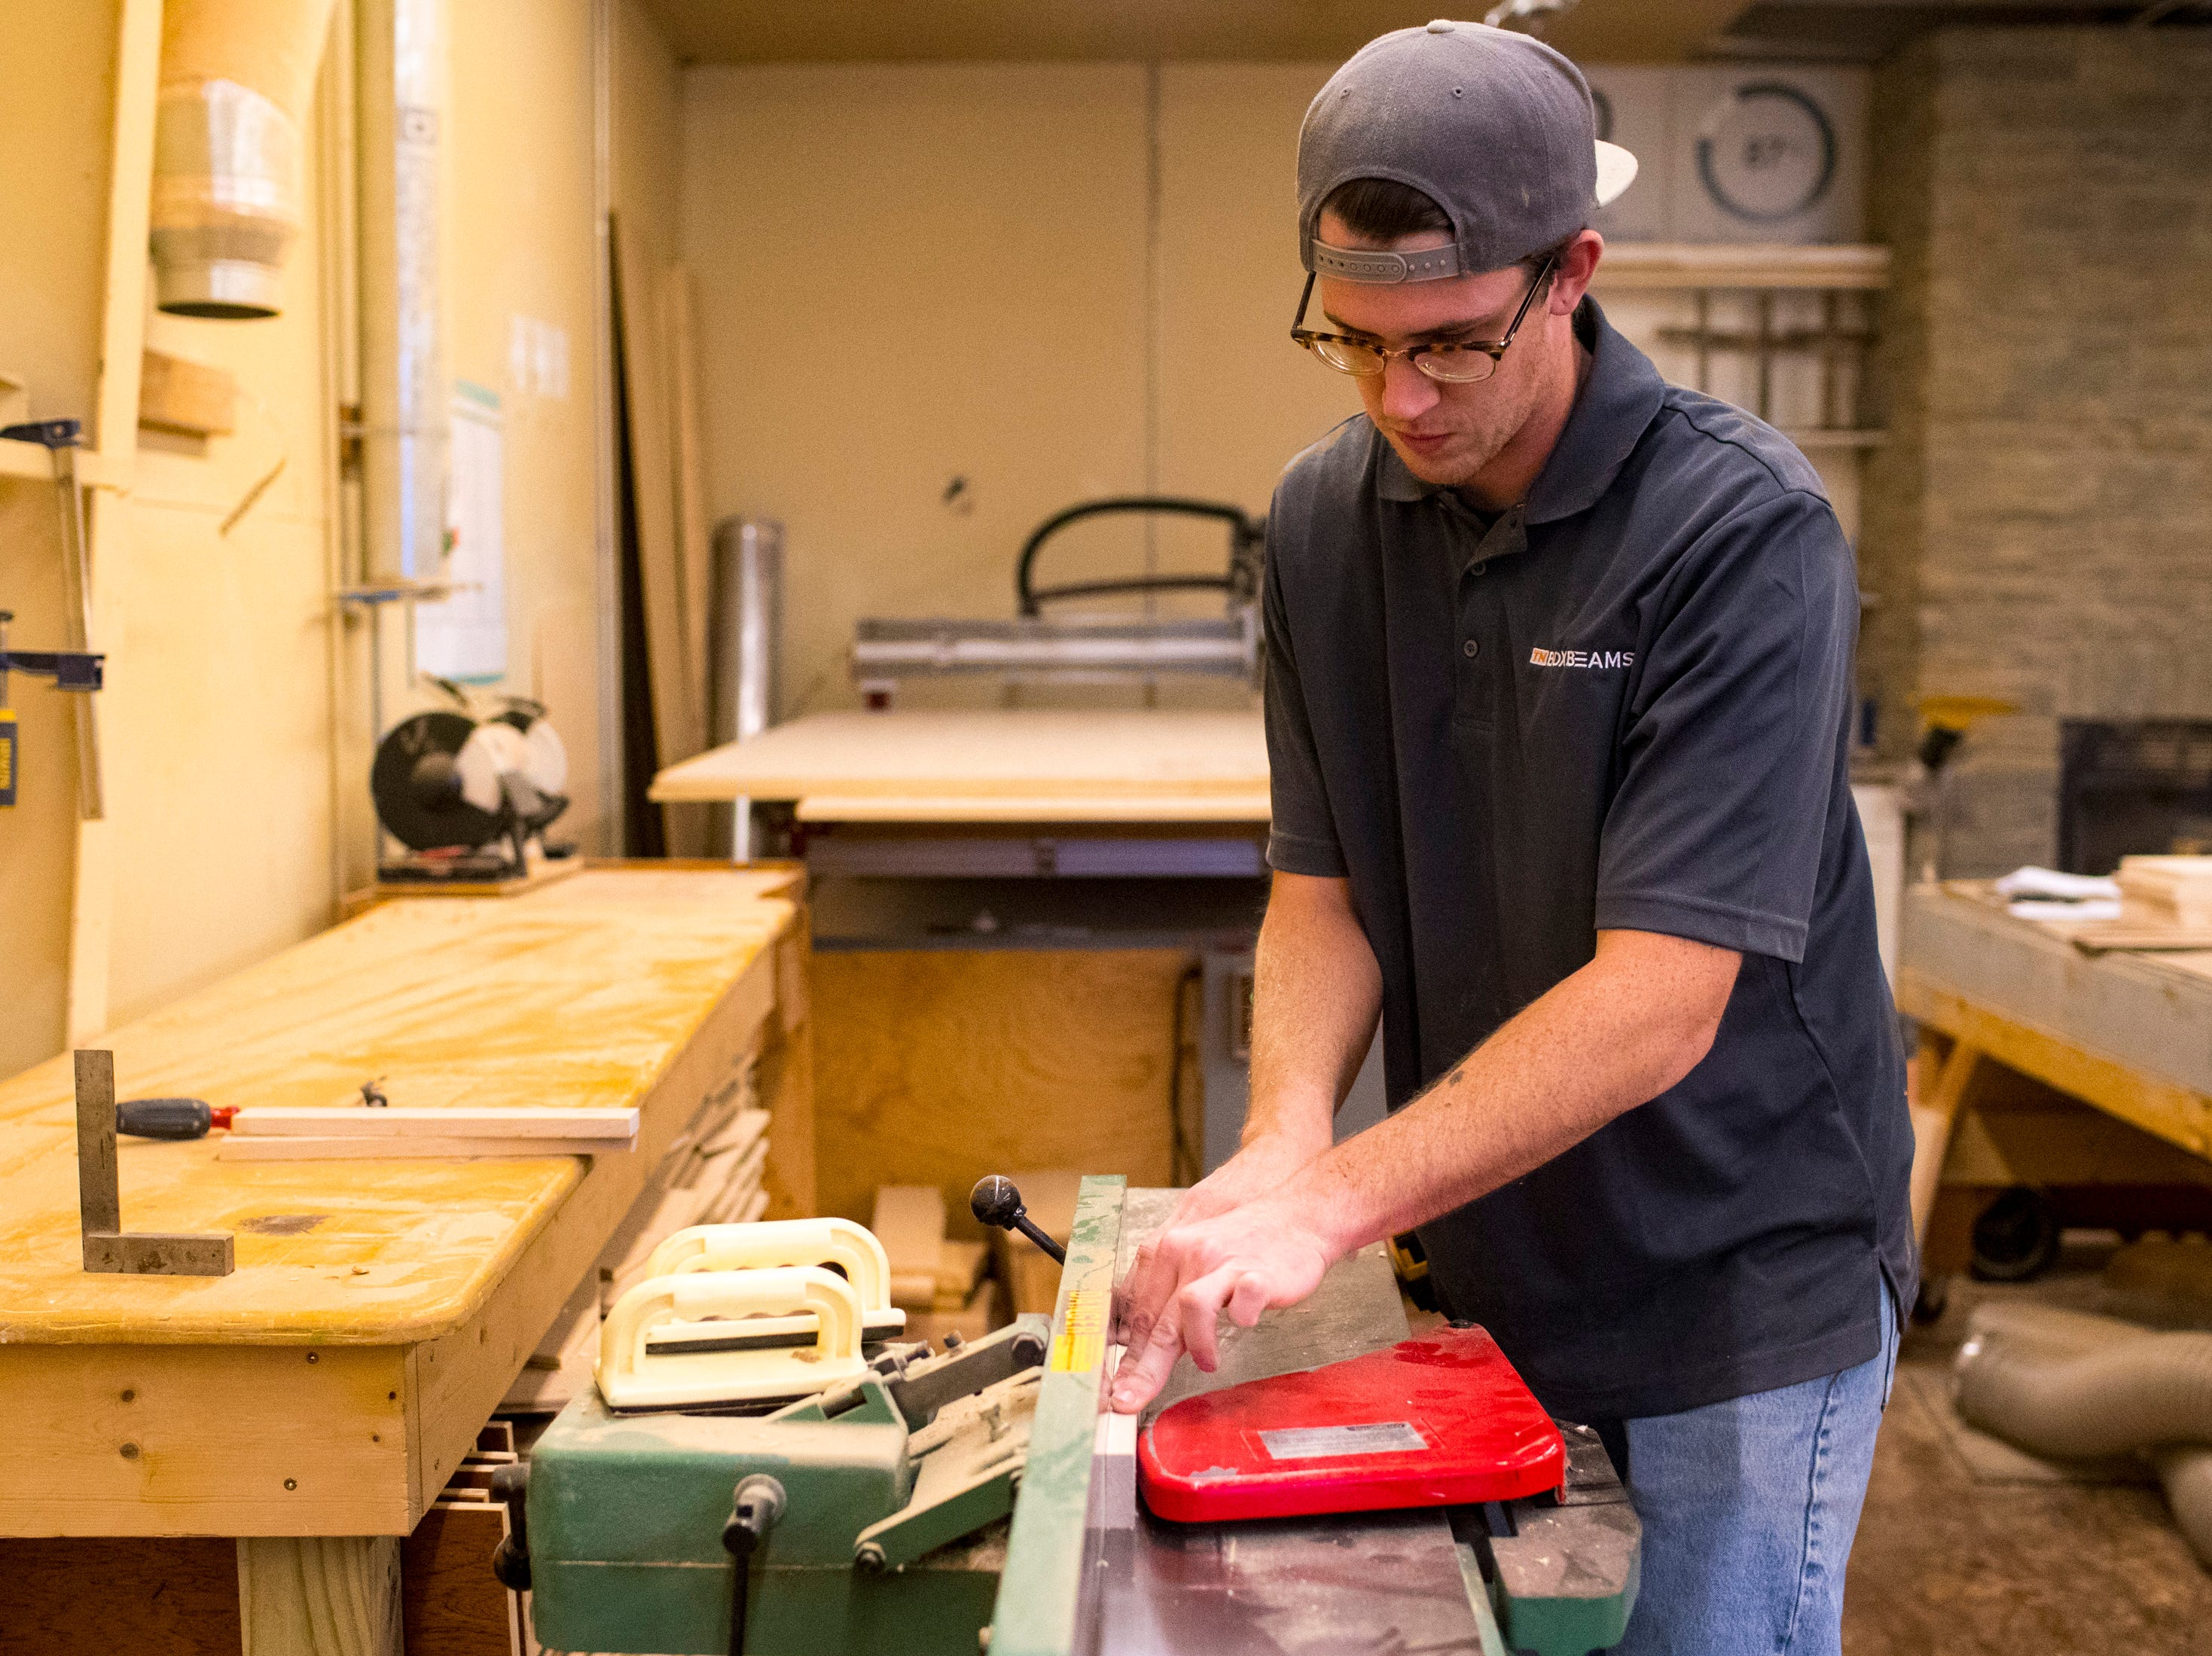 Heath Hill works to make a cutting board at TN Box Beams in Franklin on Friday, Nov. 9, 2018. TN Box Beams will be featured on the HGTV show Property Brothers Buying + Selling on Nov. 14.